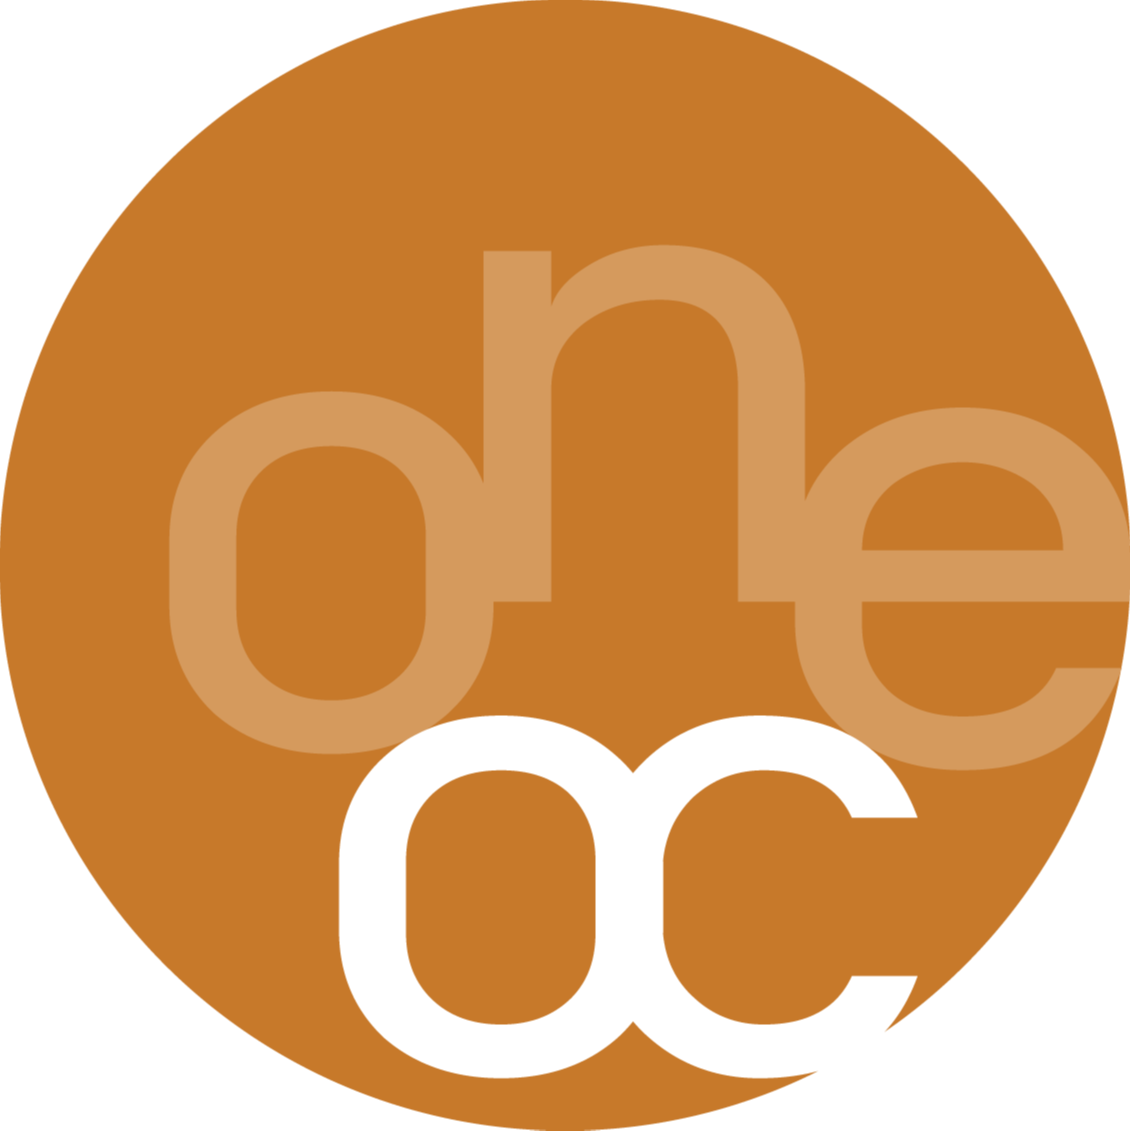 Logo of OneOC